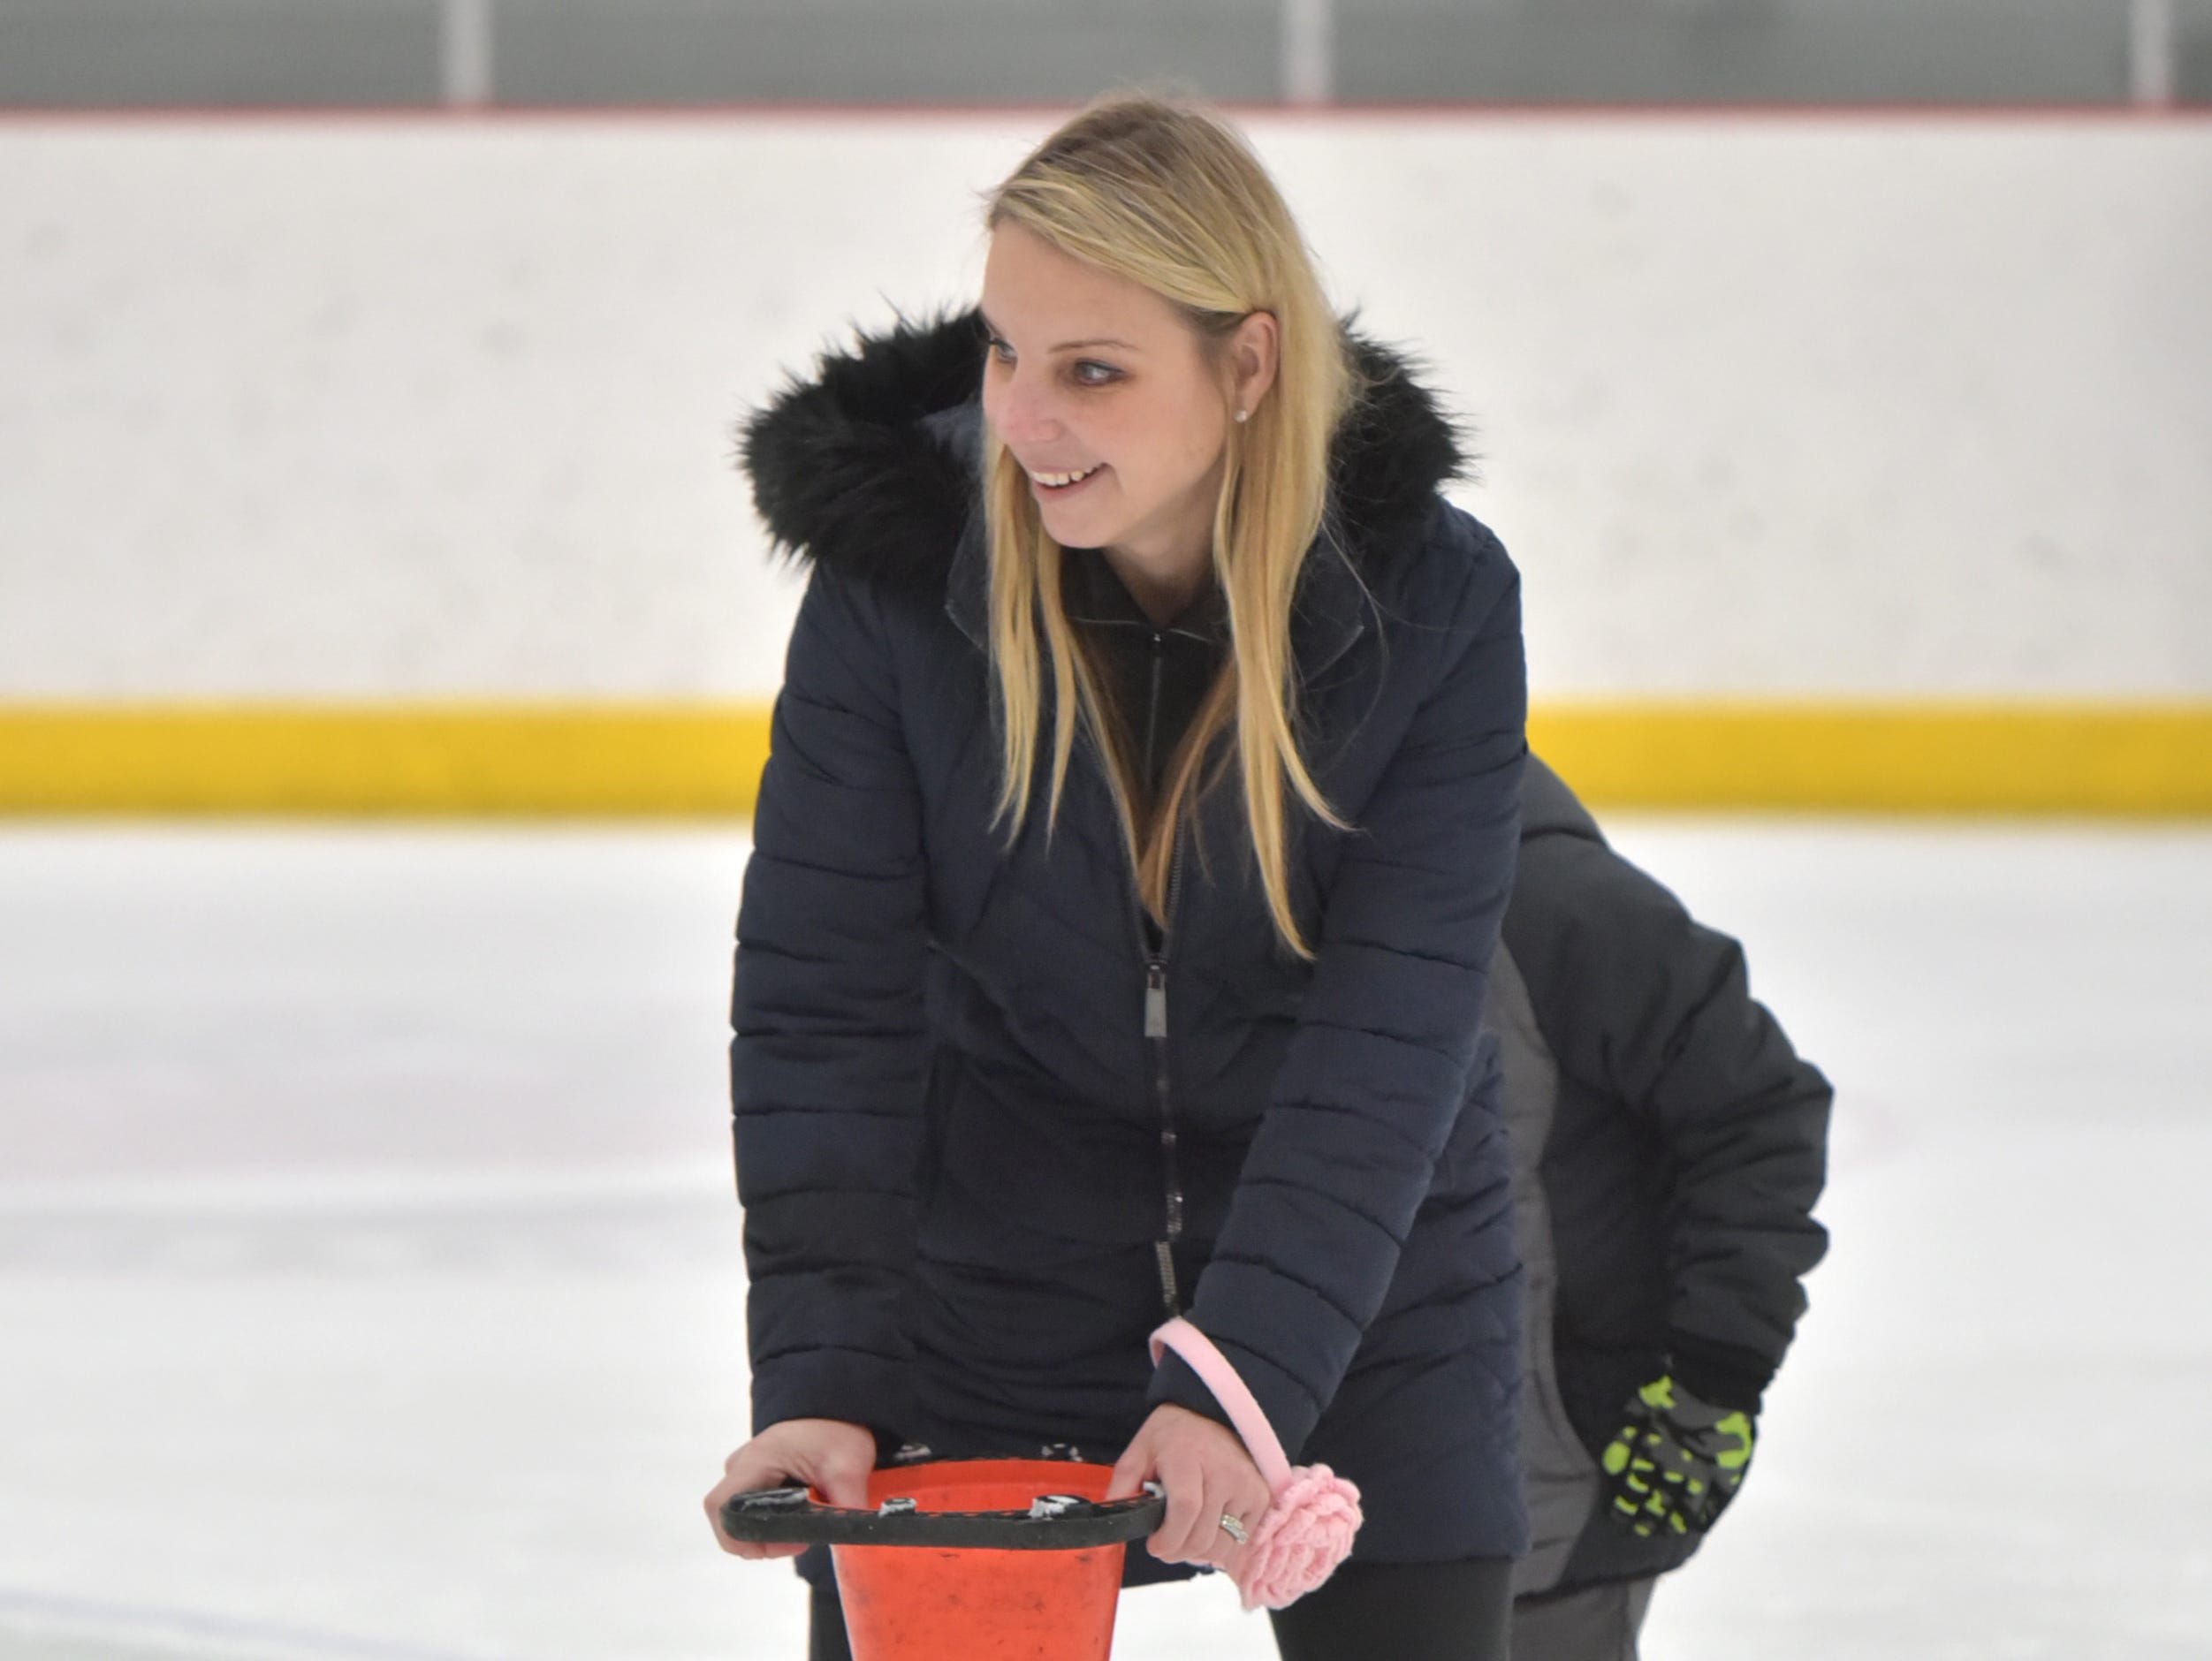 Trudy Talan has some fun at center ice during the Jan. 23 Noon Skate at the Novi Ice Arena. The Novi resident was at the rink with her kids Gia, 8, and Luca, 5.